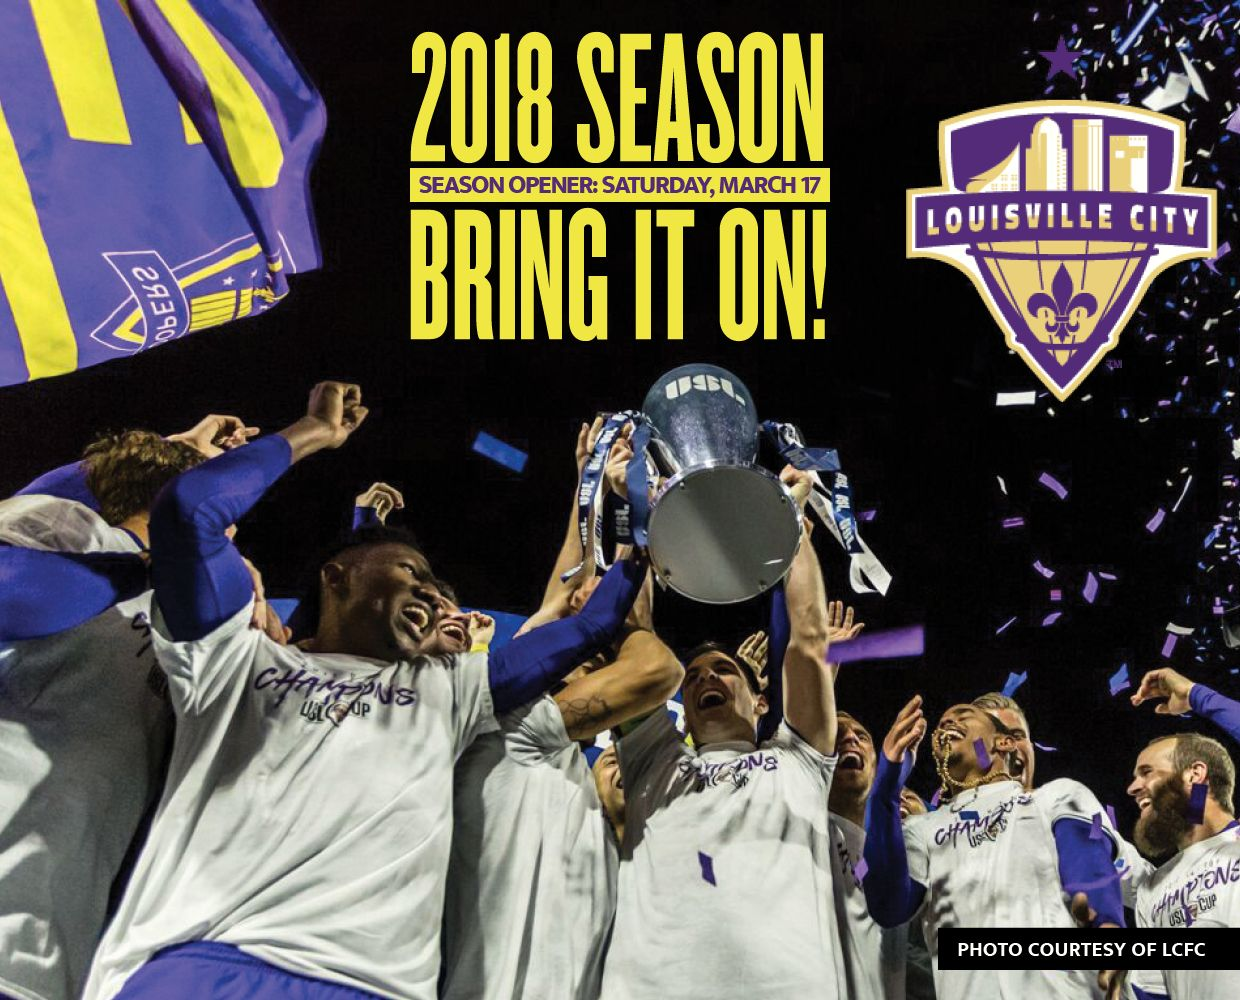 March 17 - LCFC Season Opener + 2018 Schedule image